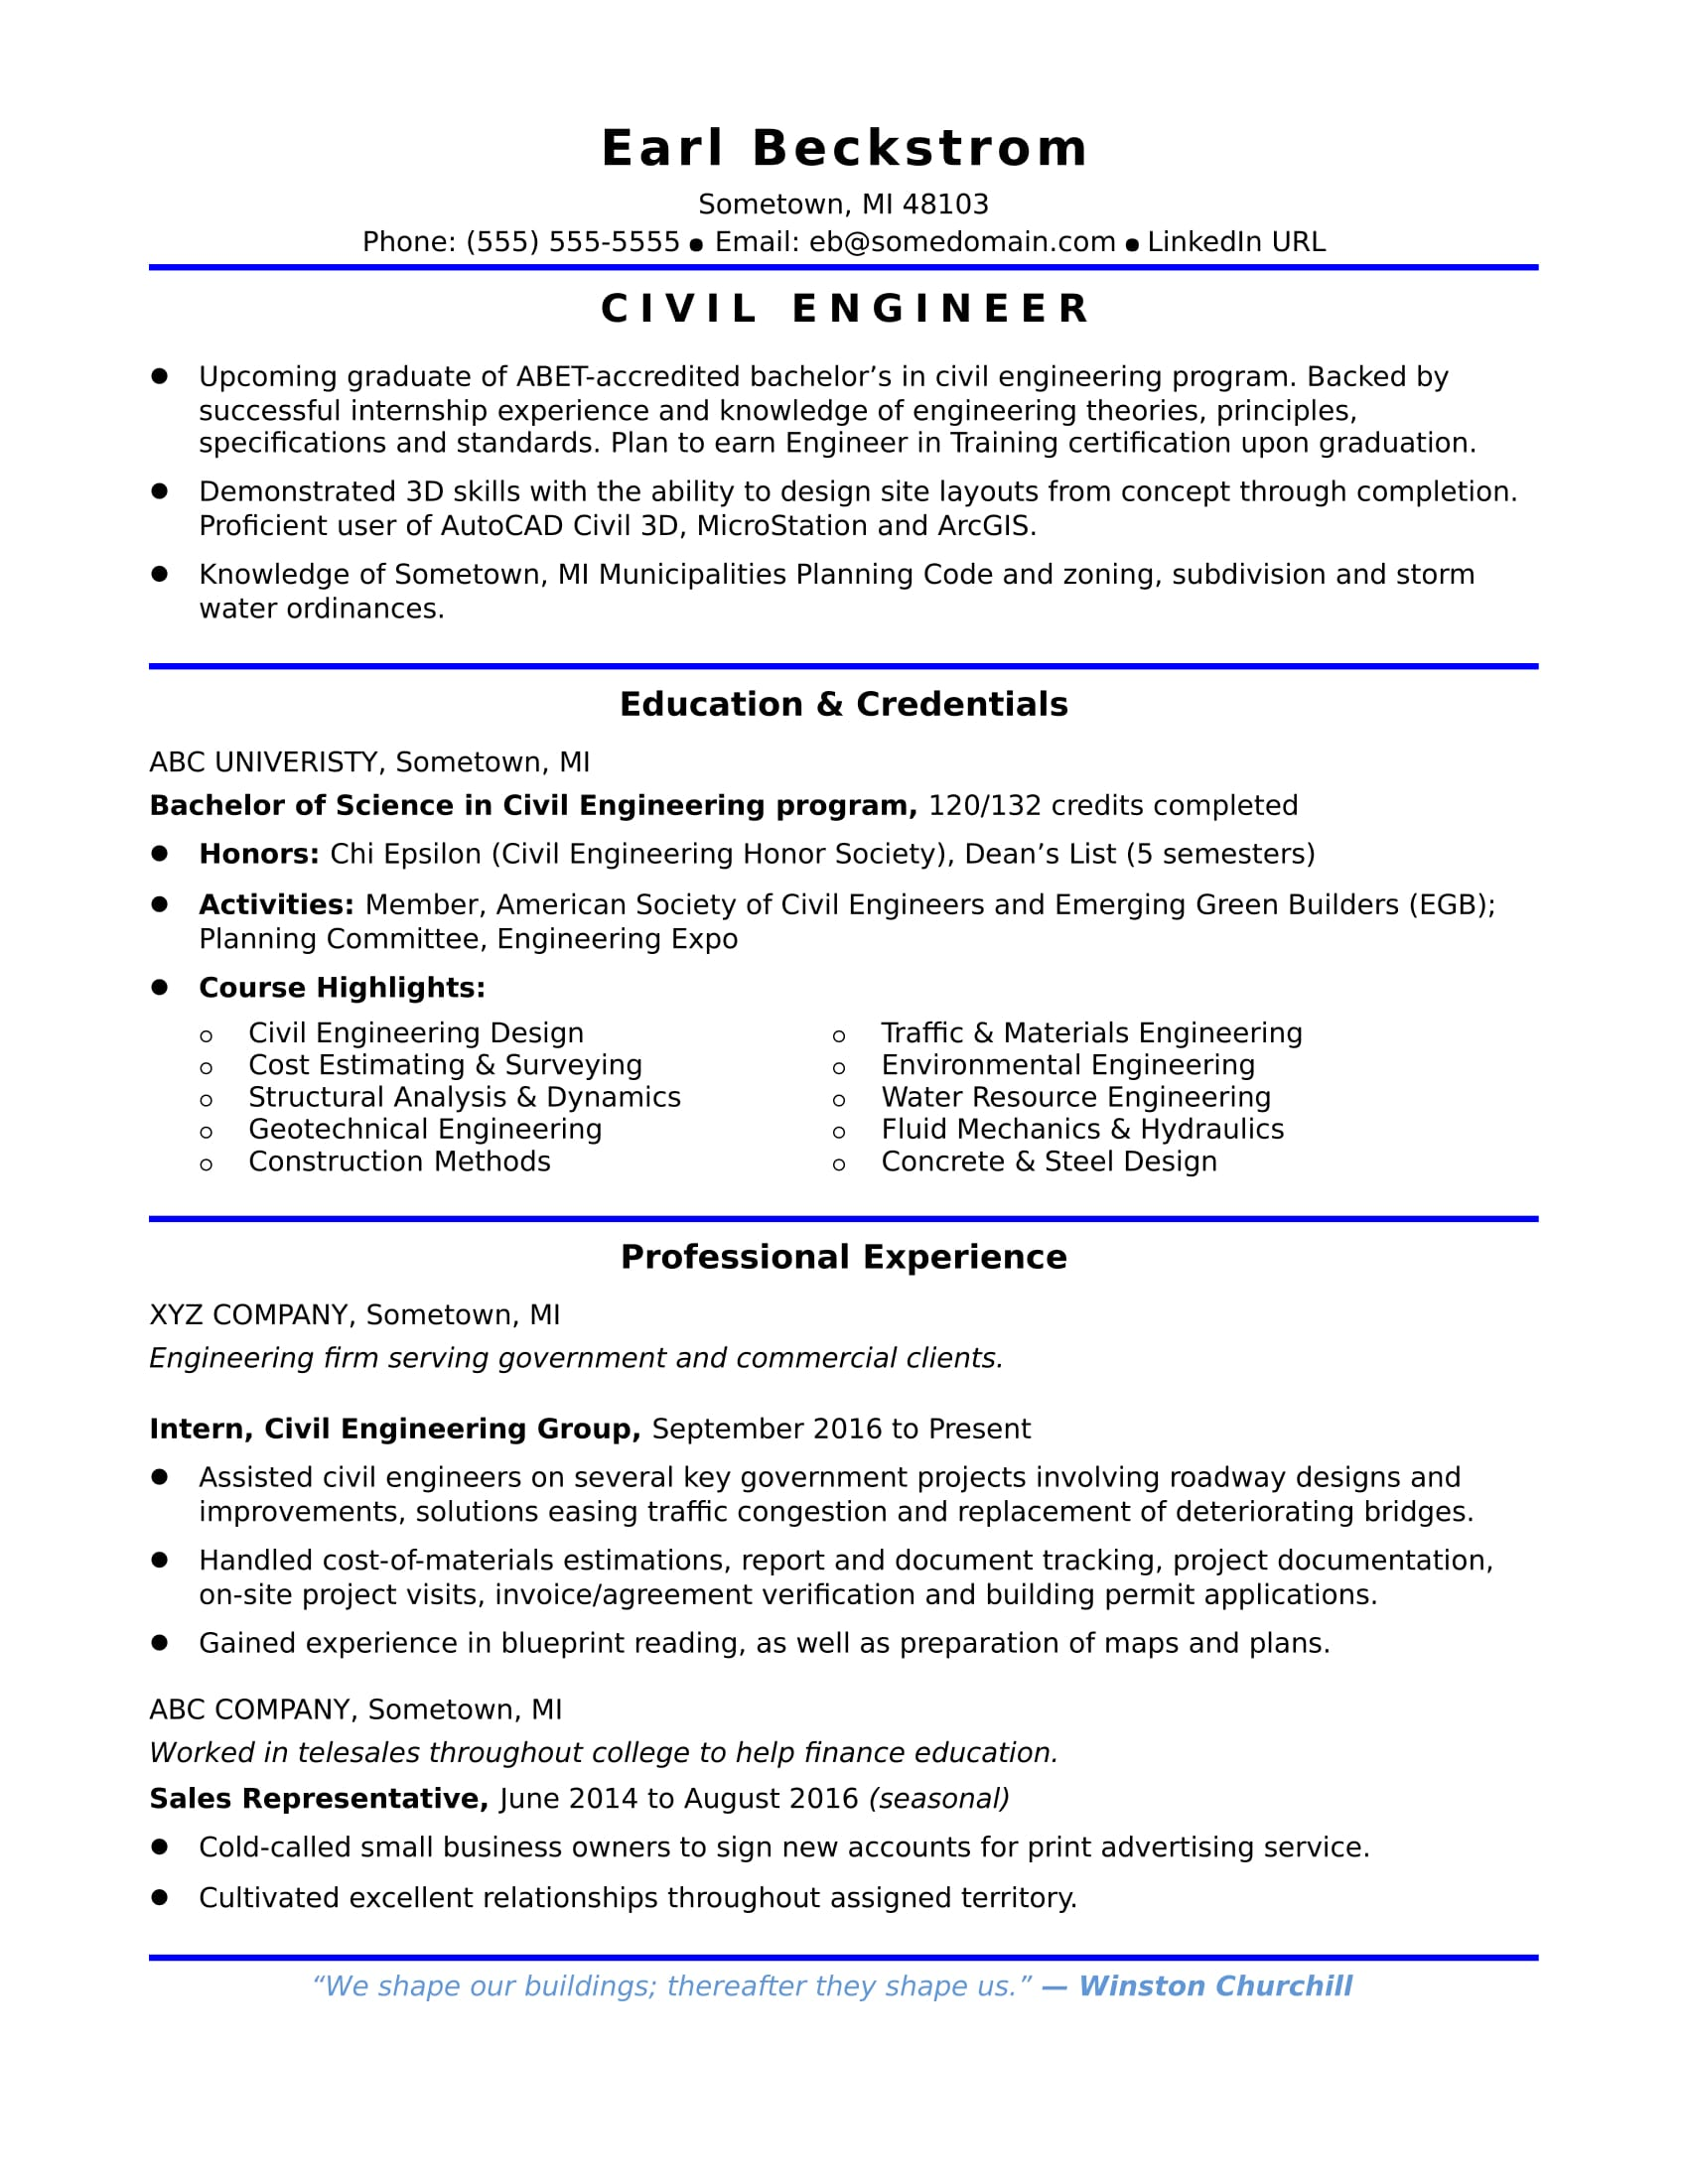 sample resume for civil engineer fresh graduate 2018 resume 2018